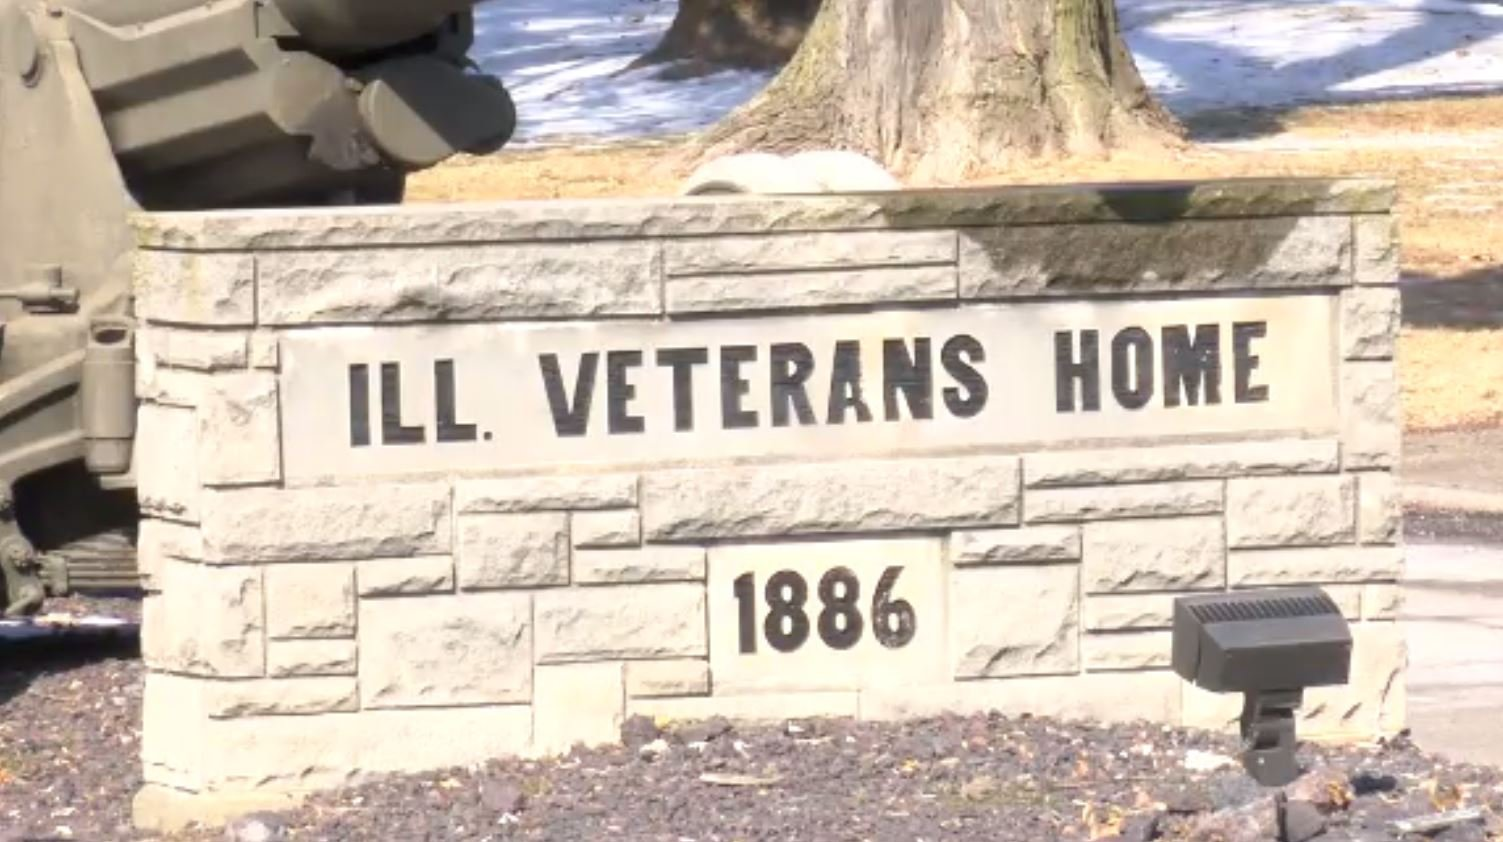 Two new cases of Legionnaires' disease have been reported at an Illinois veterans home where more than a dozen people have died from the disease since 2015. (Source: WGEM/CNN)